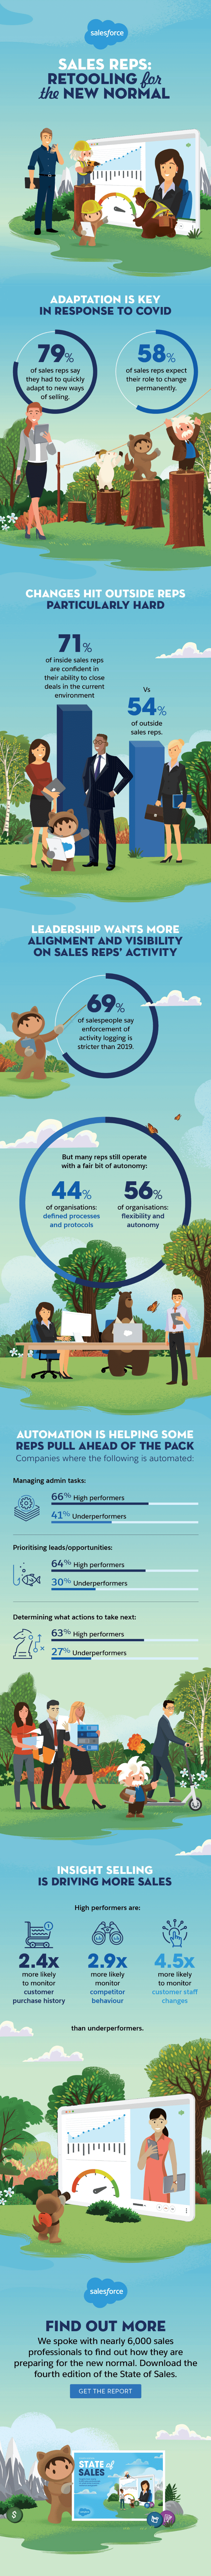 How Sales Reps are Staying at the Top of Their Game | Salesforce Guide